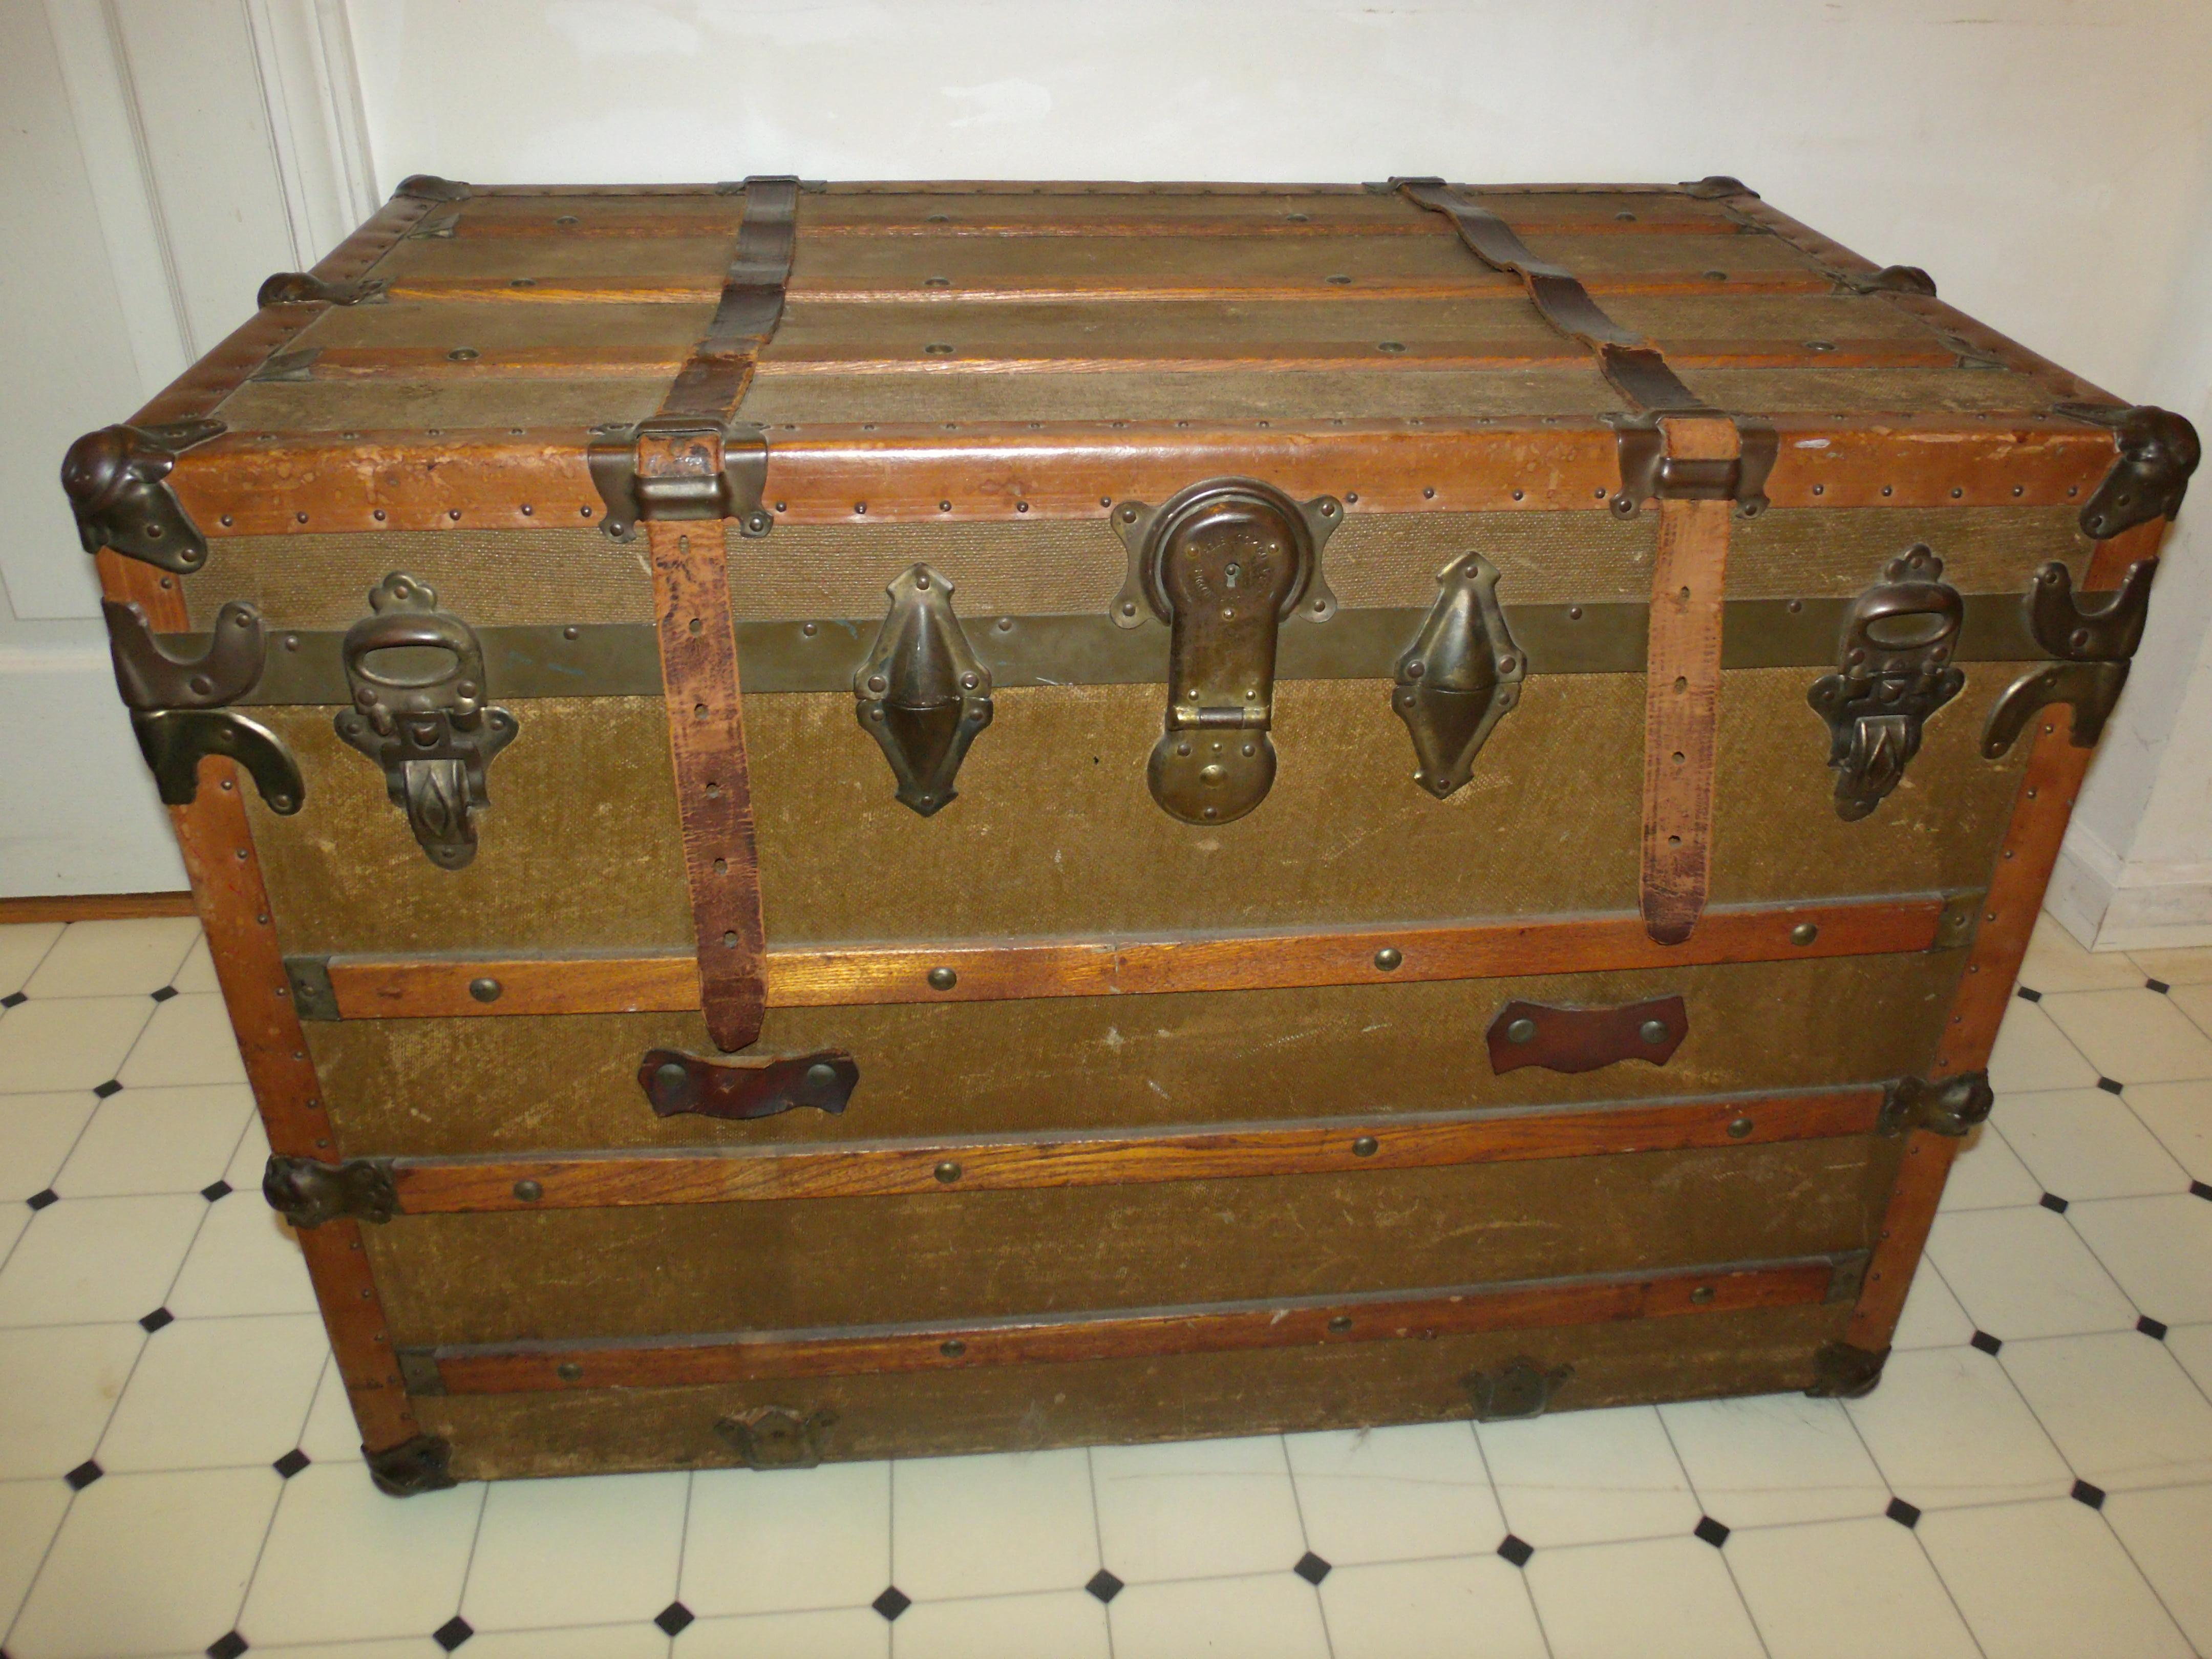 Eveleigh Baggage Trunk Canada With Eagle Lock Company Hardware